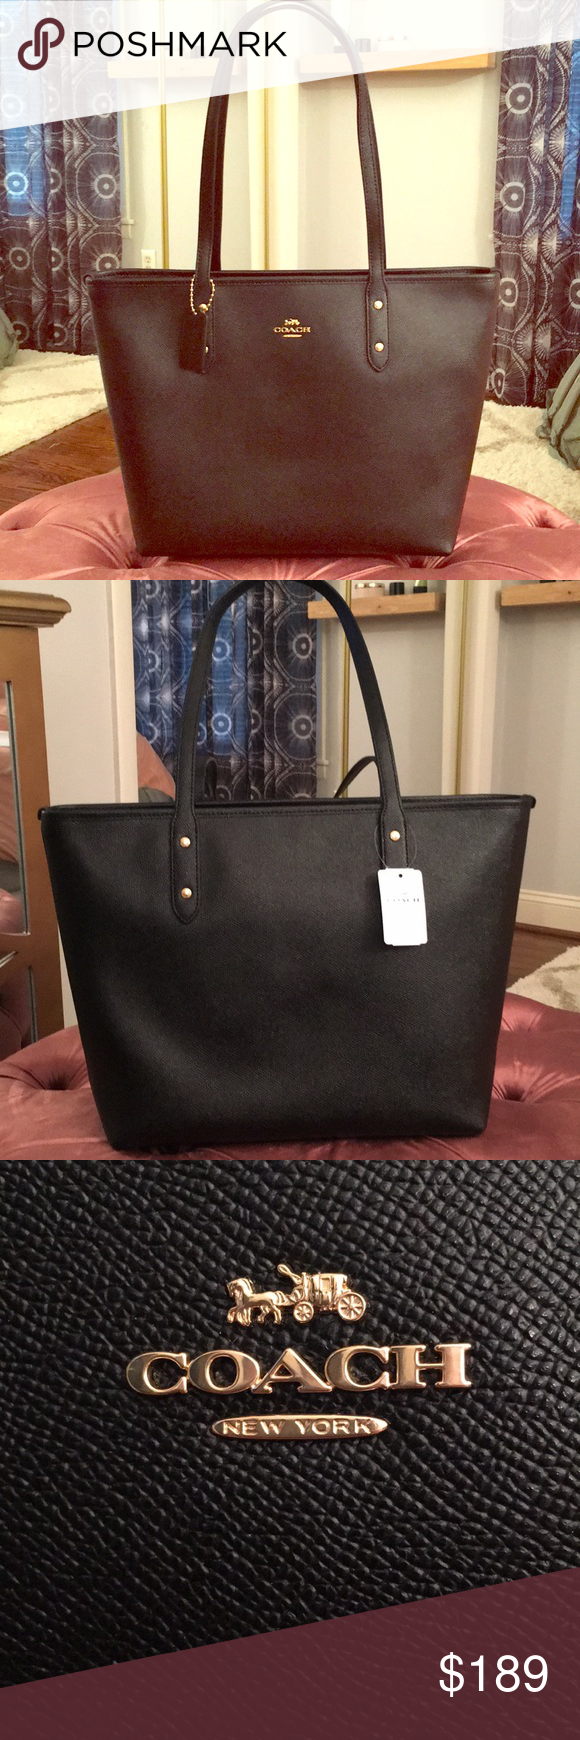 d748e31dd0c Spotted while shopping on Poshmark  NWT Large Coach Zip Tote and Accordion  Wallet!  poshmark  fashion  shopping  style  Coach  Handbags